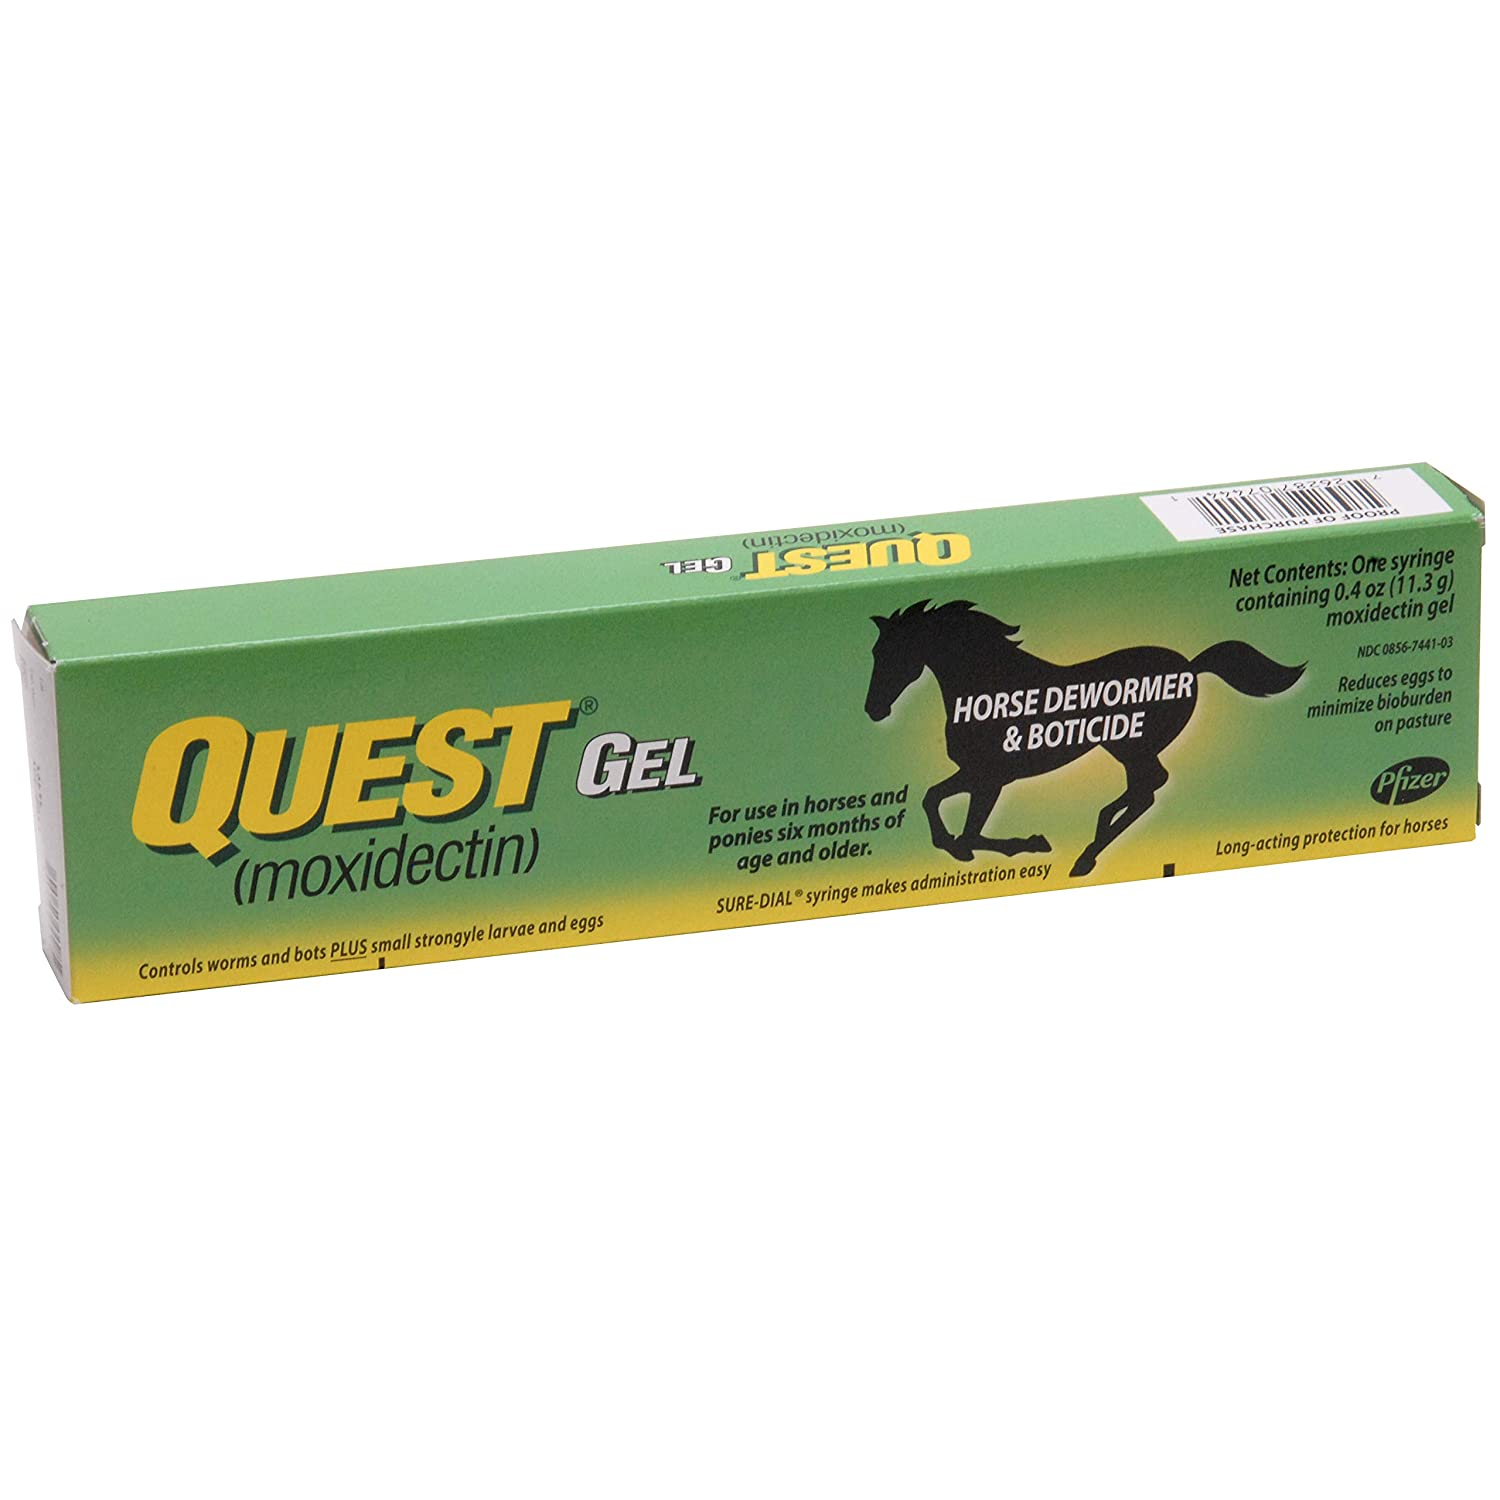 Quest Gel Horse Dewormer, 2% Moxidectin Zoetis (formerly Pfizer Animal Health)